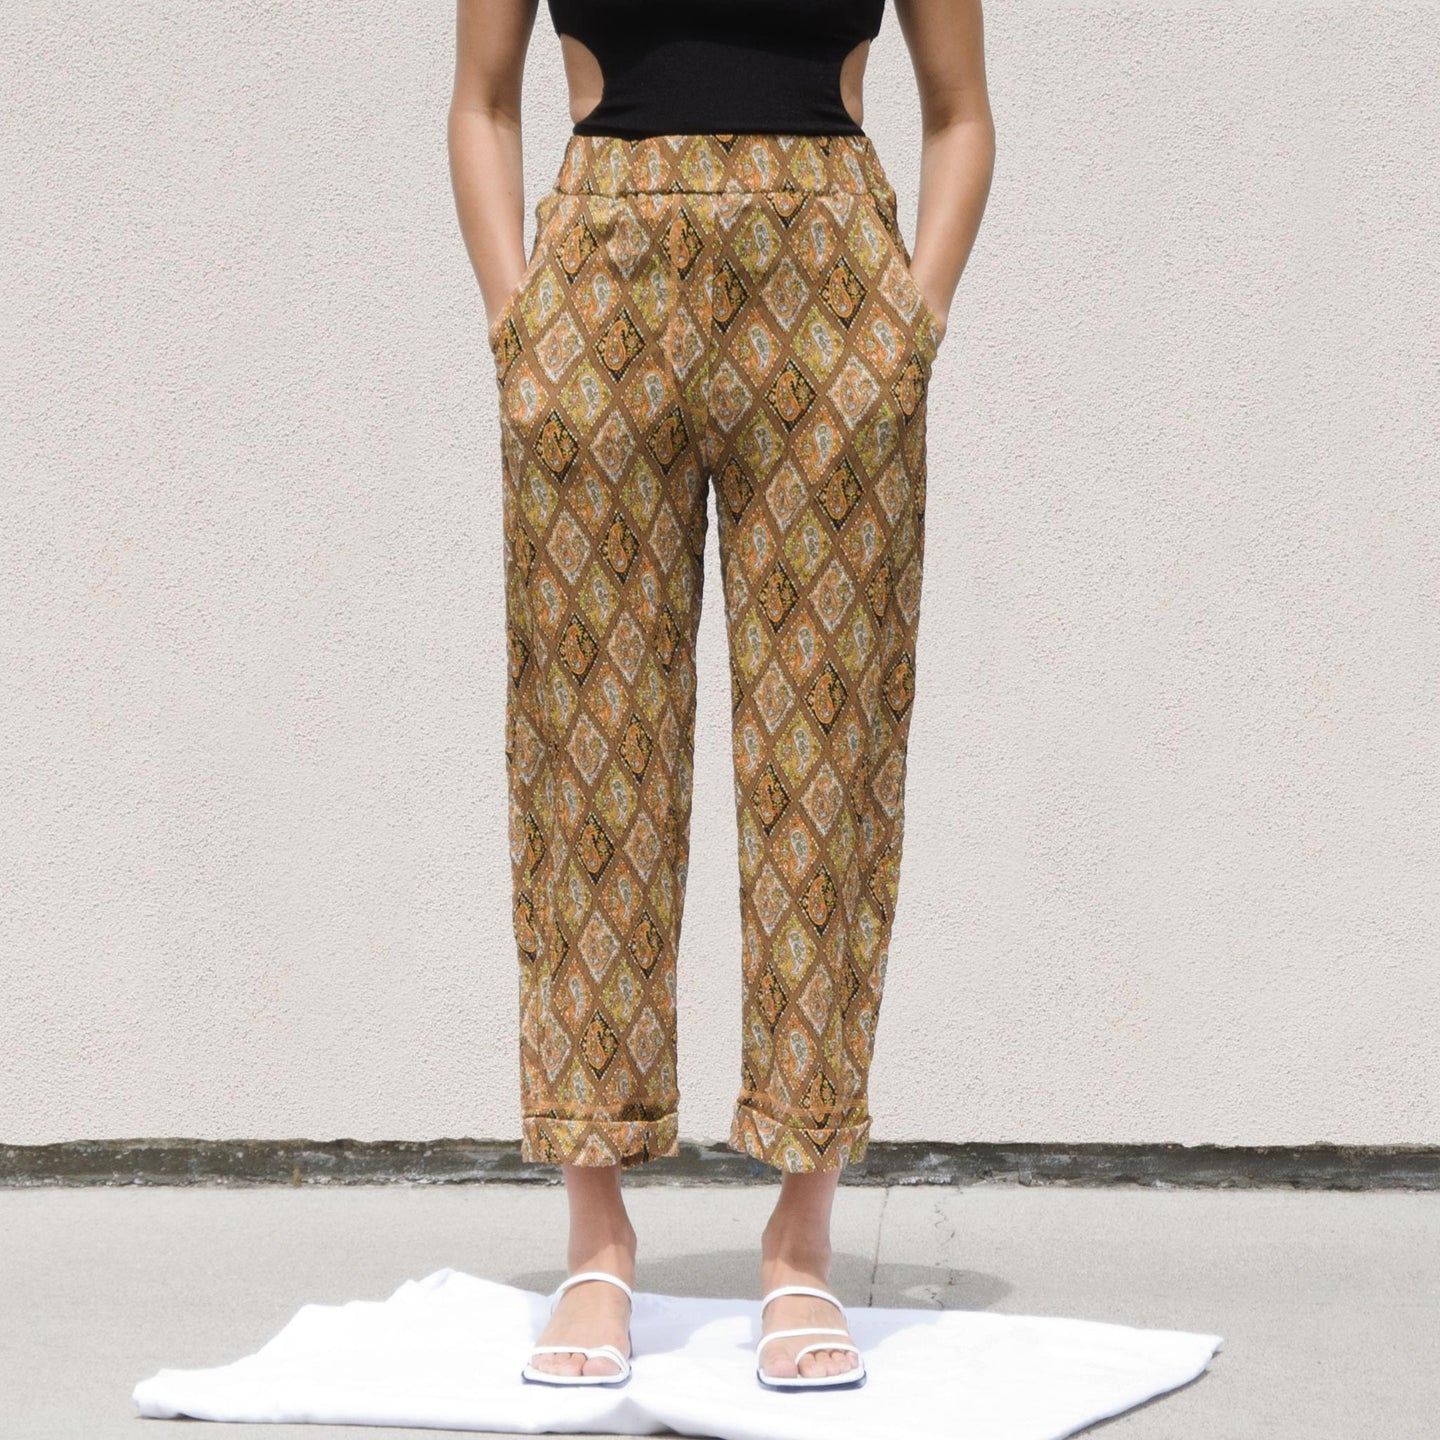 Nanushka - Selah Pants, front view, available at LCD.